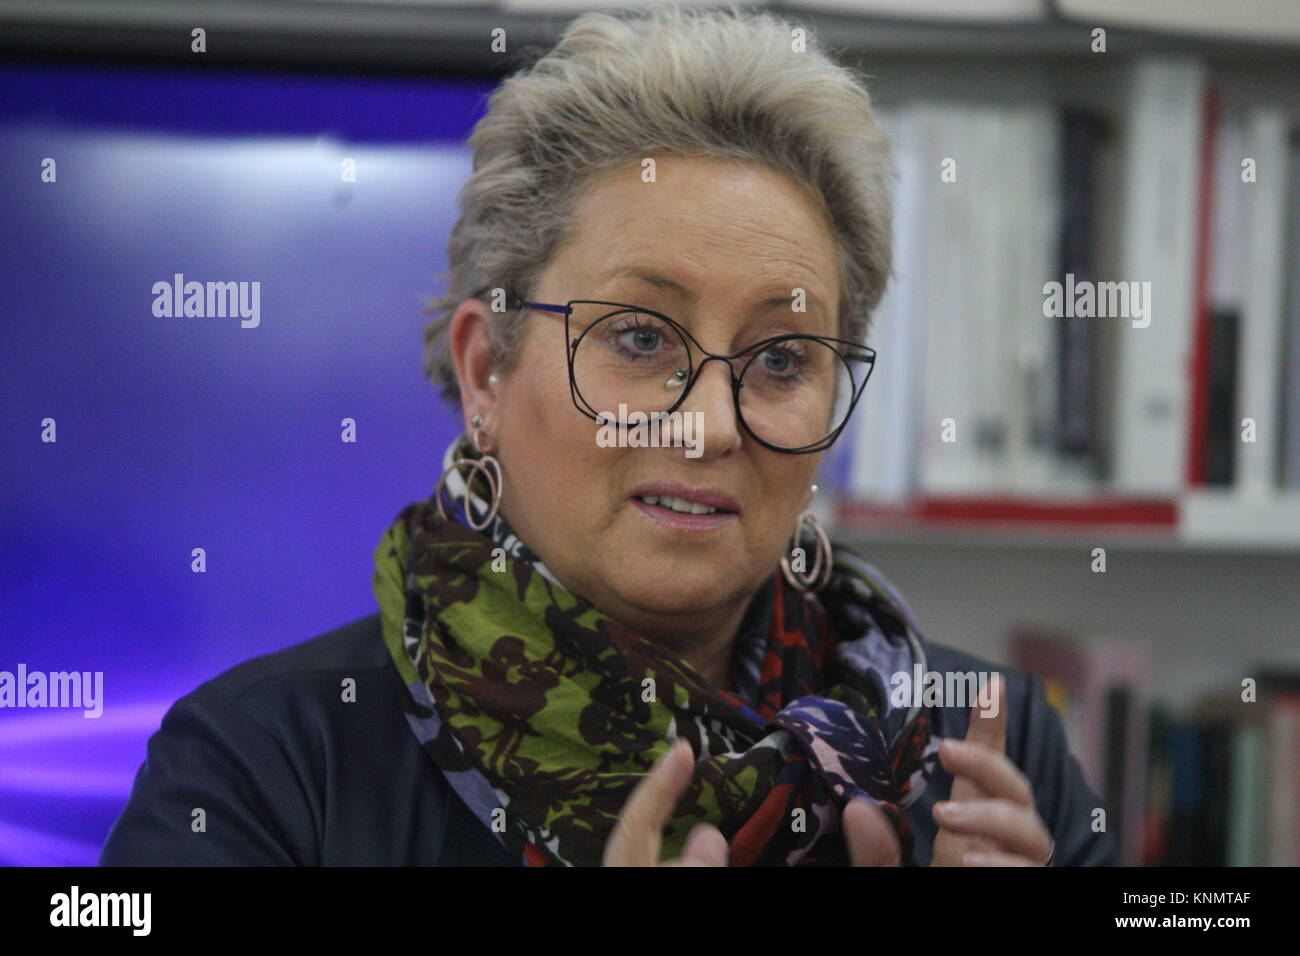 Carolyn Smith High Resolution Stock Photography and Images - Alamy